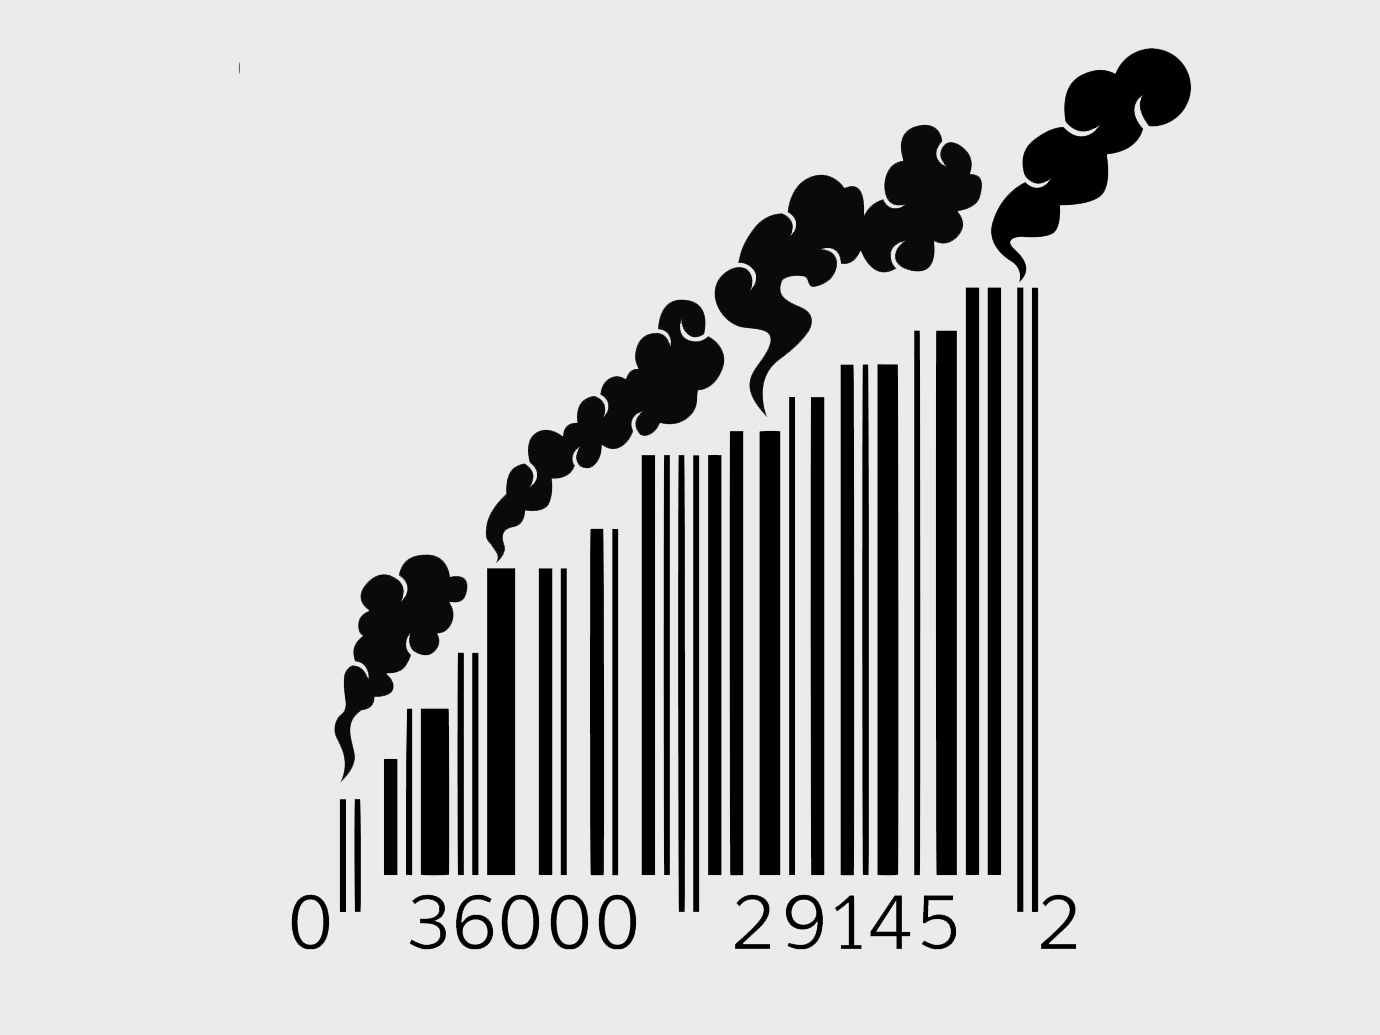 A barcode with smoke coming out of it symbolizes the pollution produced by consumerism.